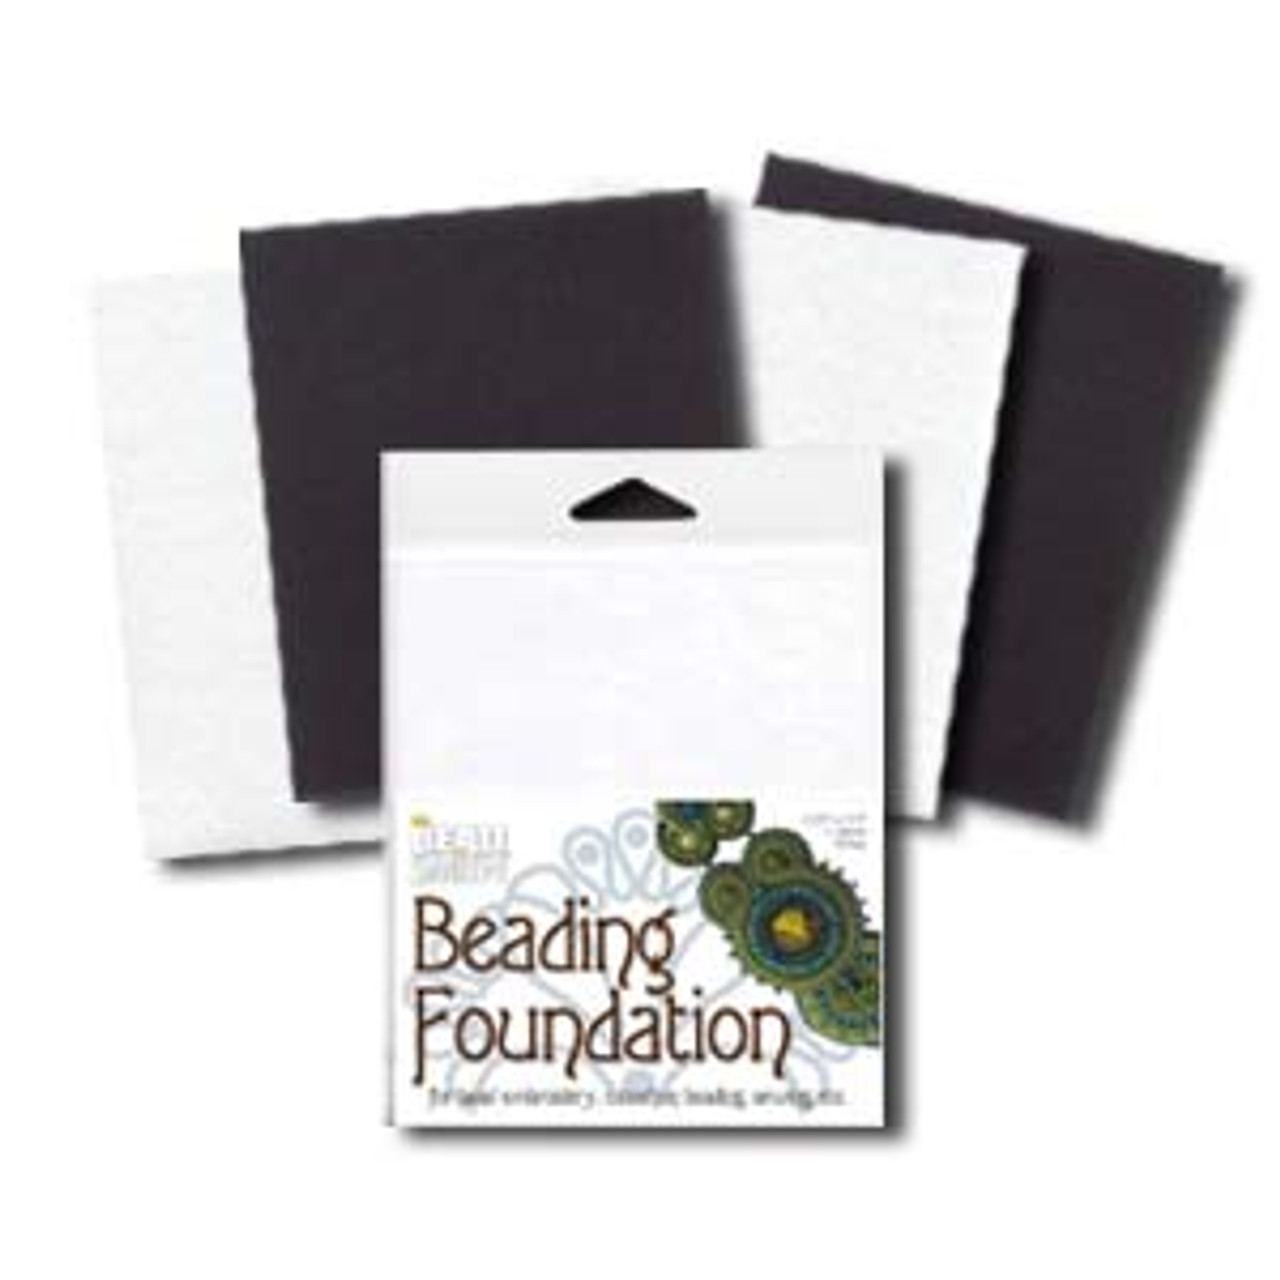 4.25x5.5 Assorted Package of Beading Foundation